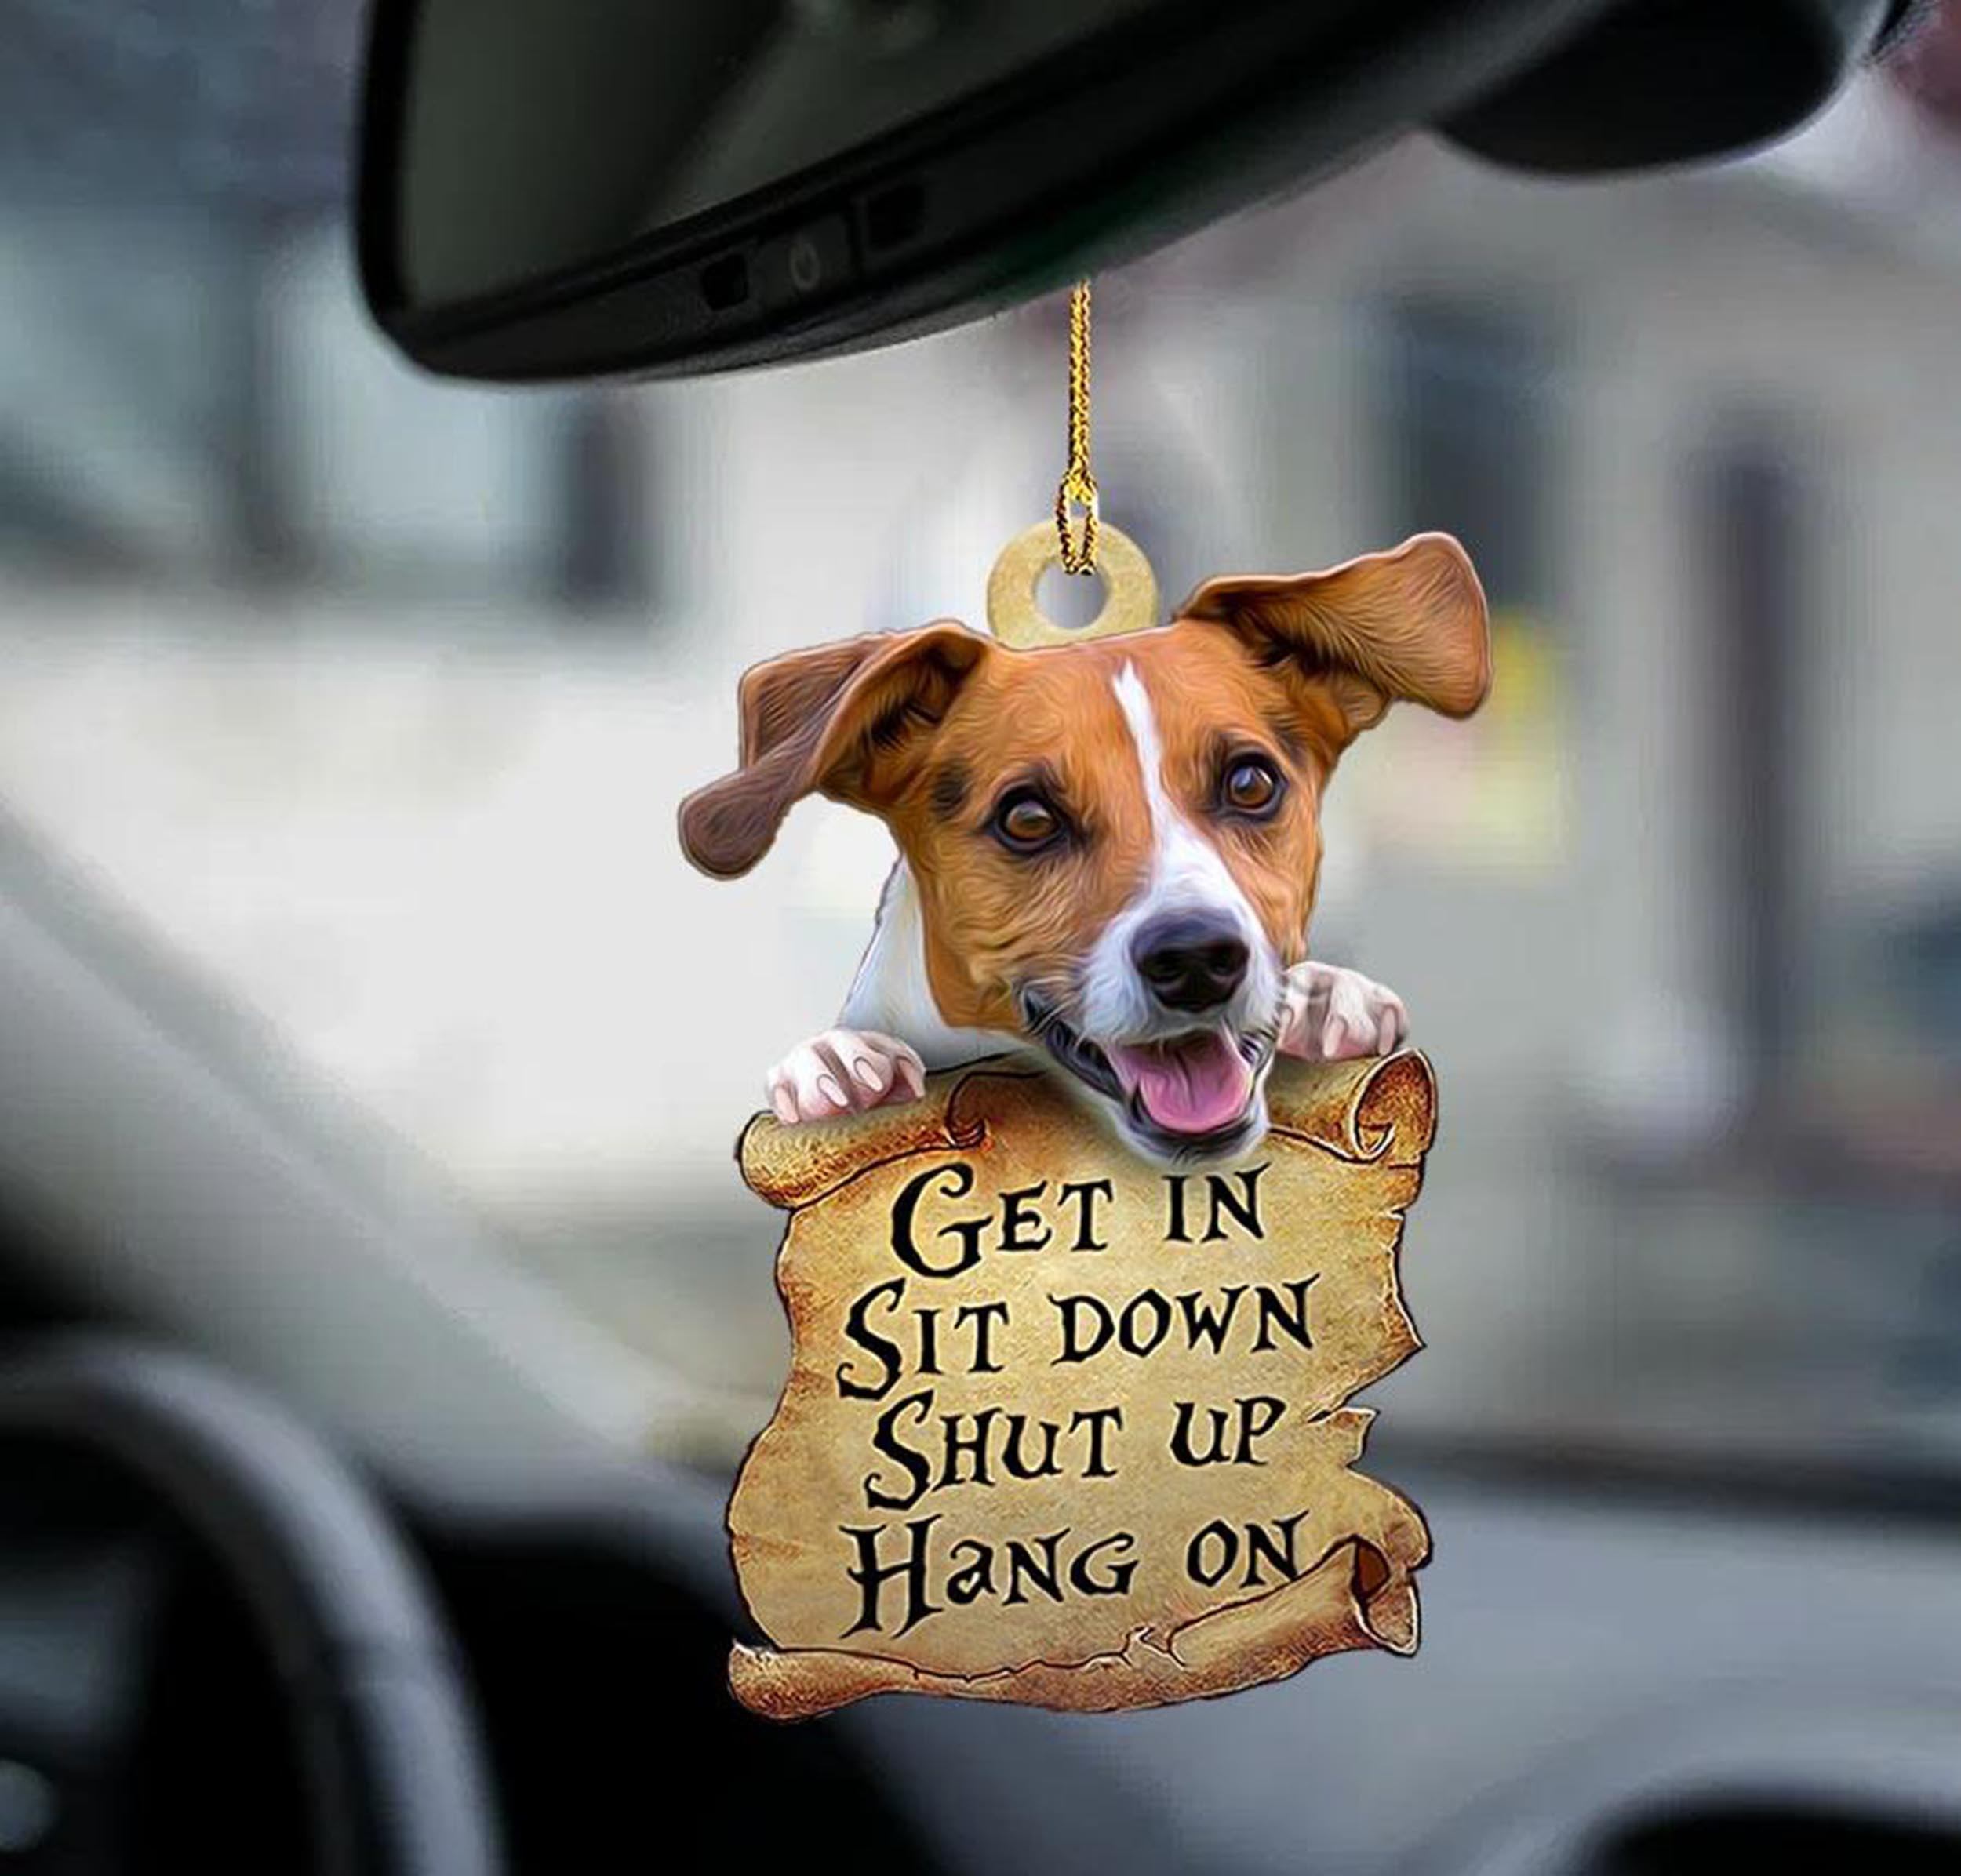 Jack Russell Get In Sit Down Shut Up Hang On Ornament